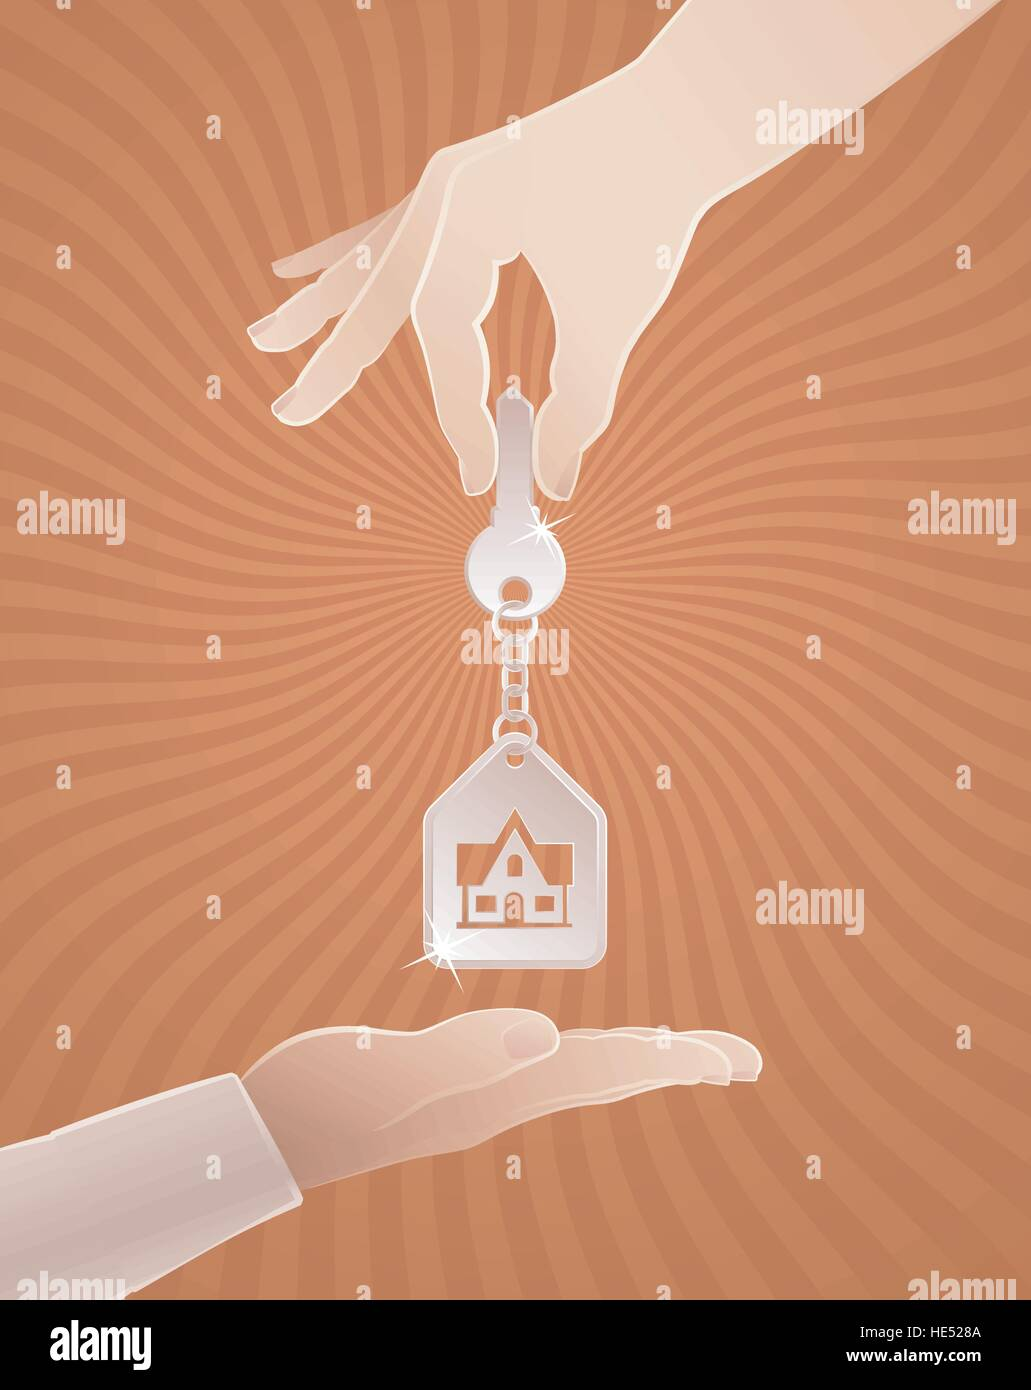 Home Sweet Home Key - Stock Vector